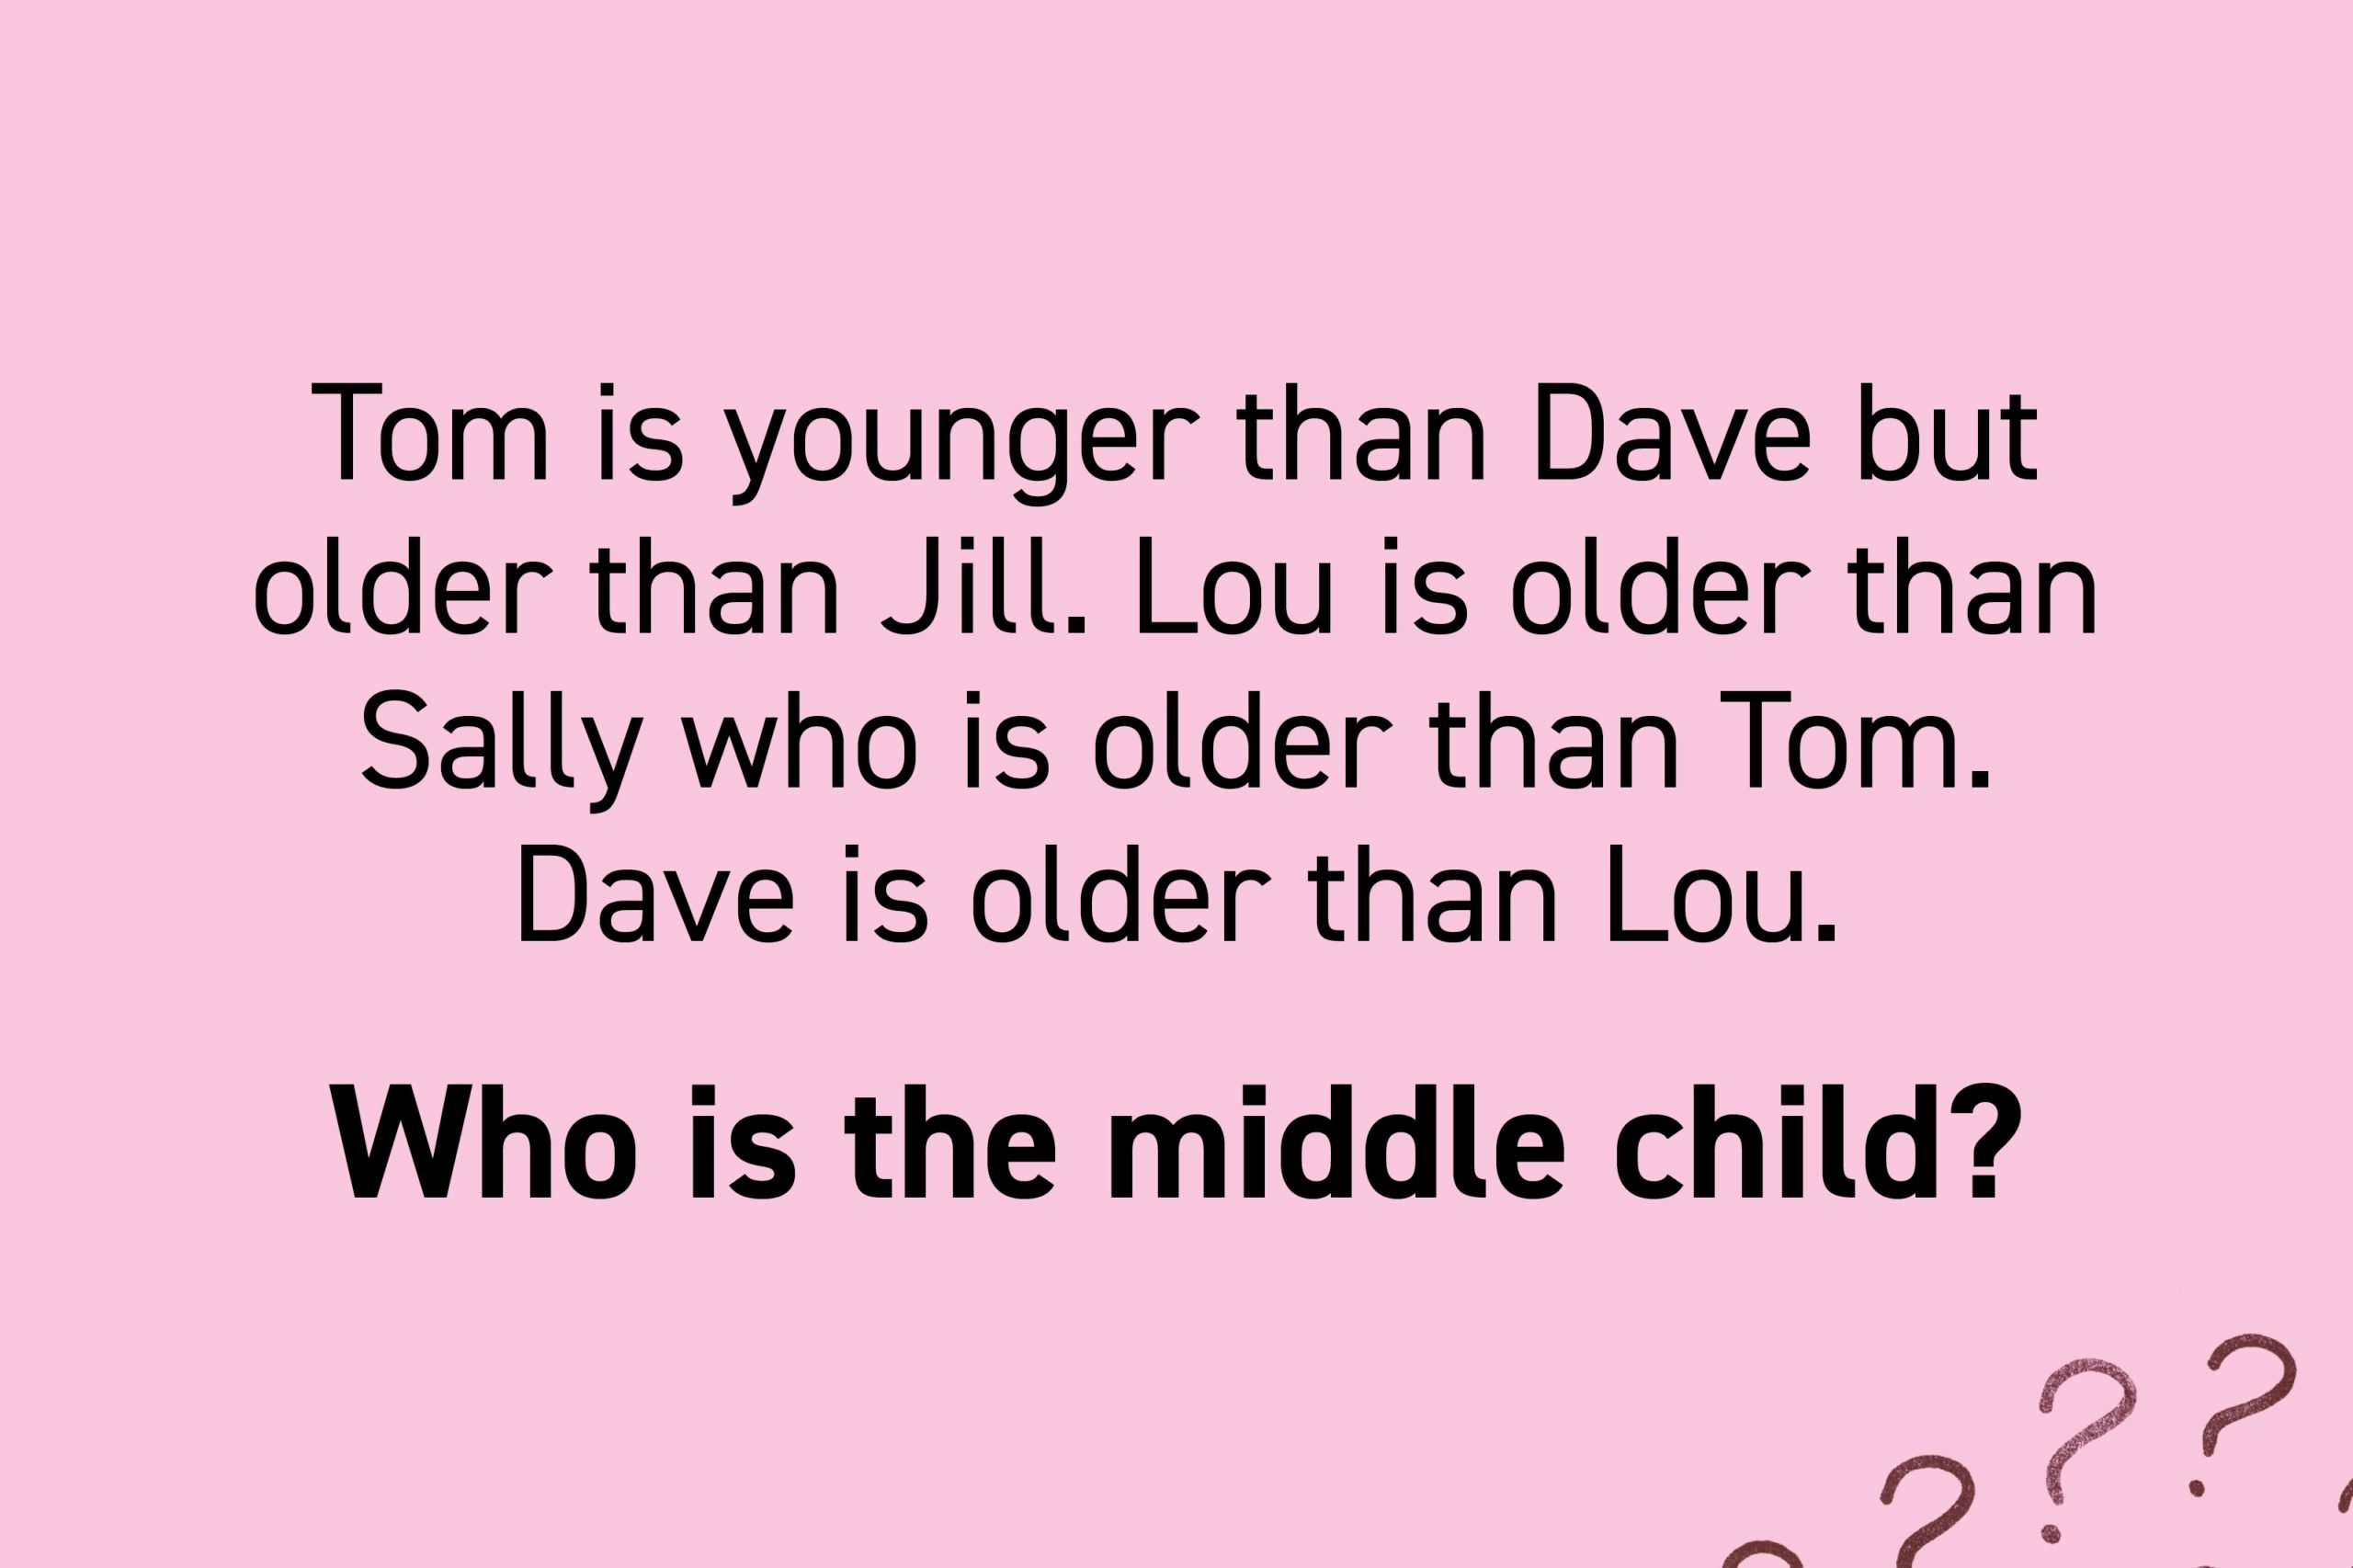 Tom is younger than Dave but older than Jill. Lou is older than Sally who is older than Tom. Dave is older than Lou. Who is the middle child?